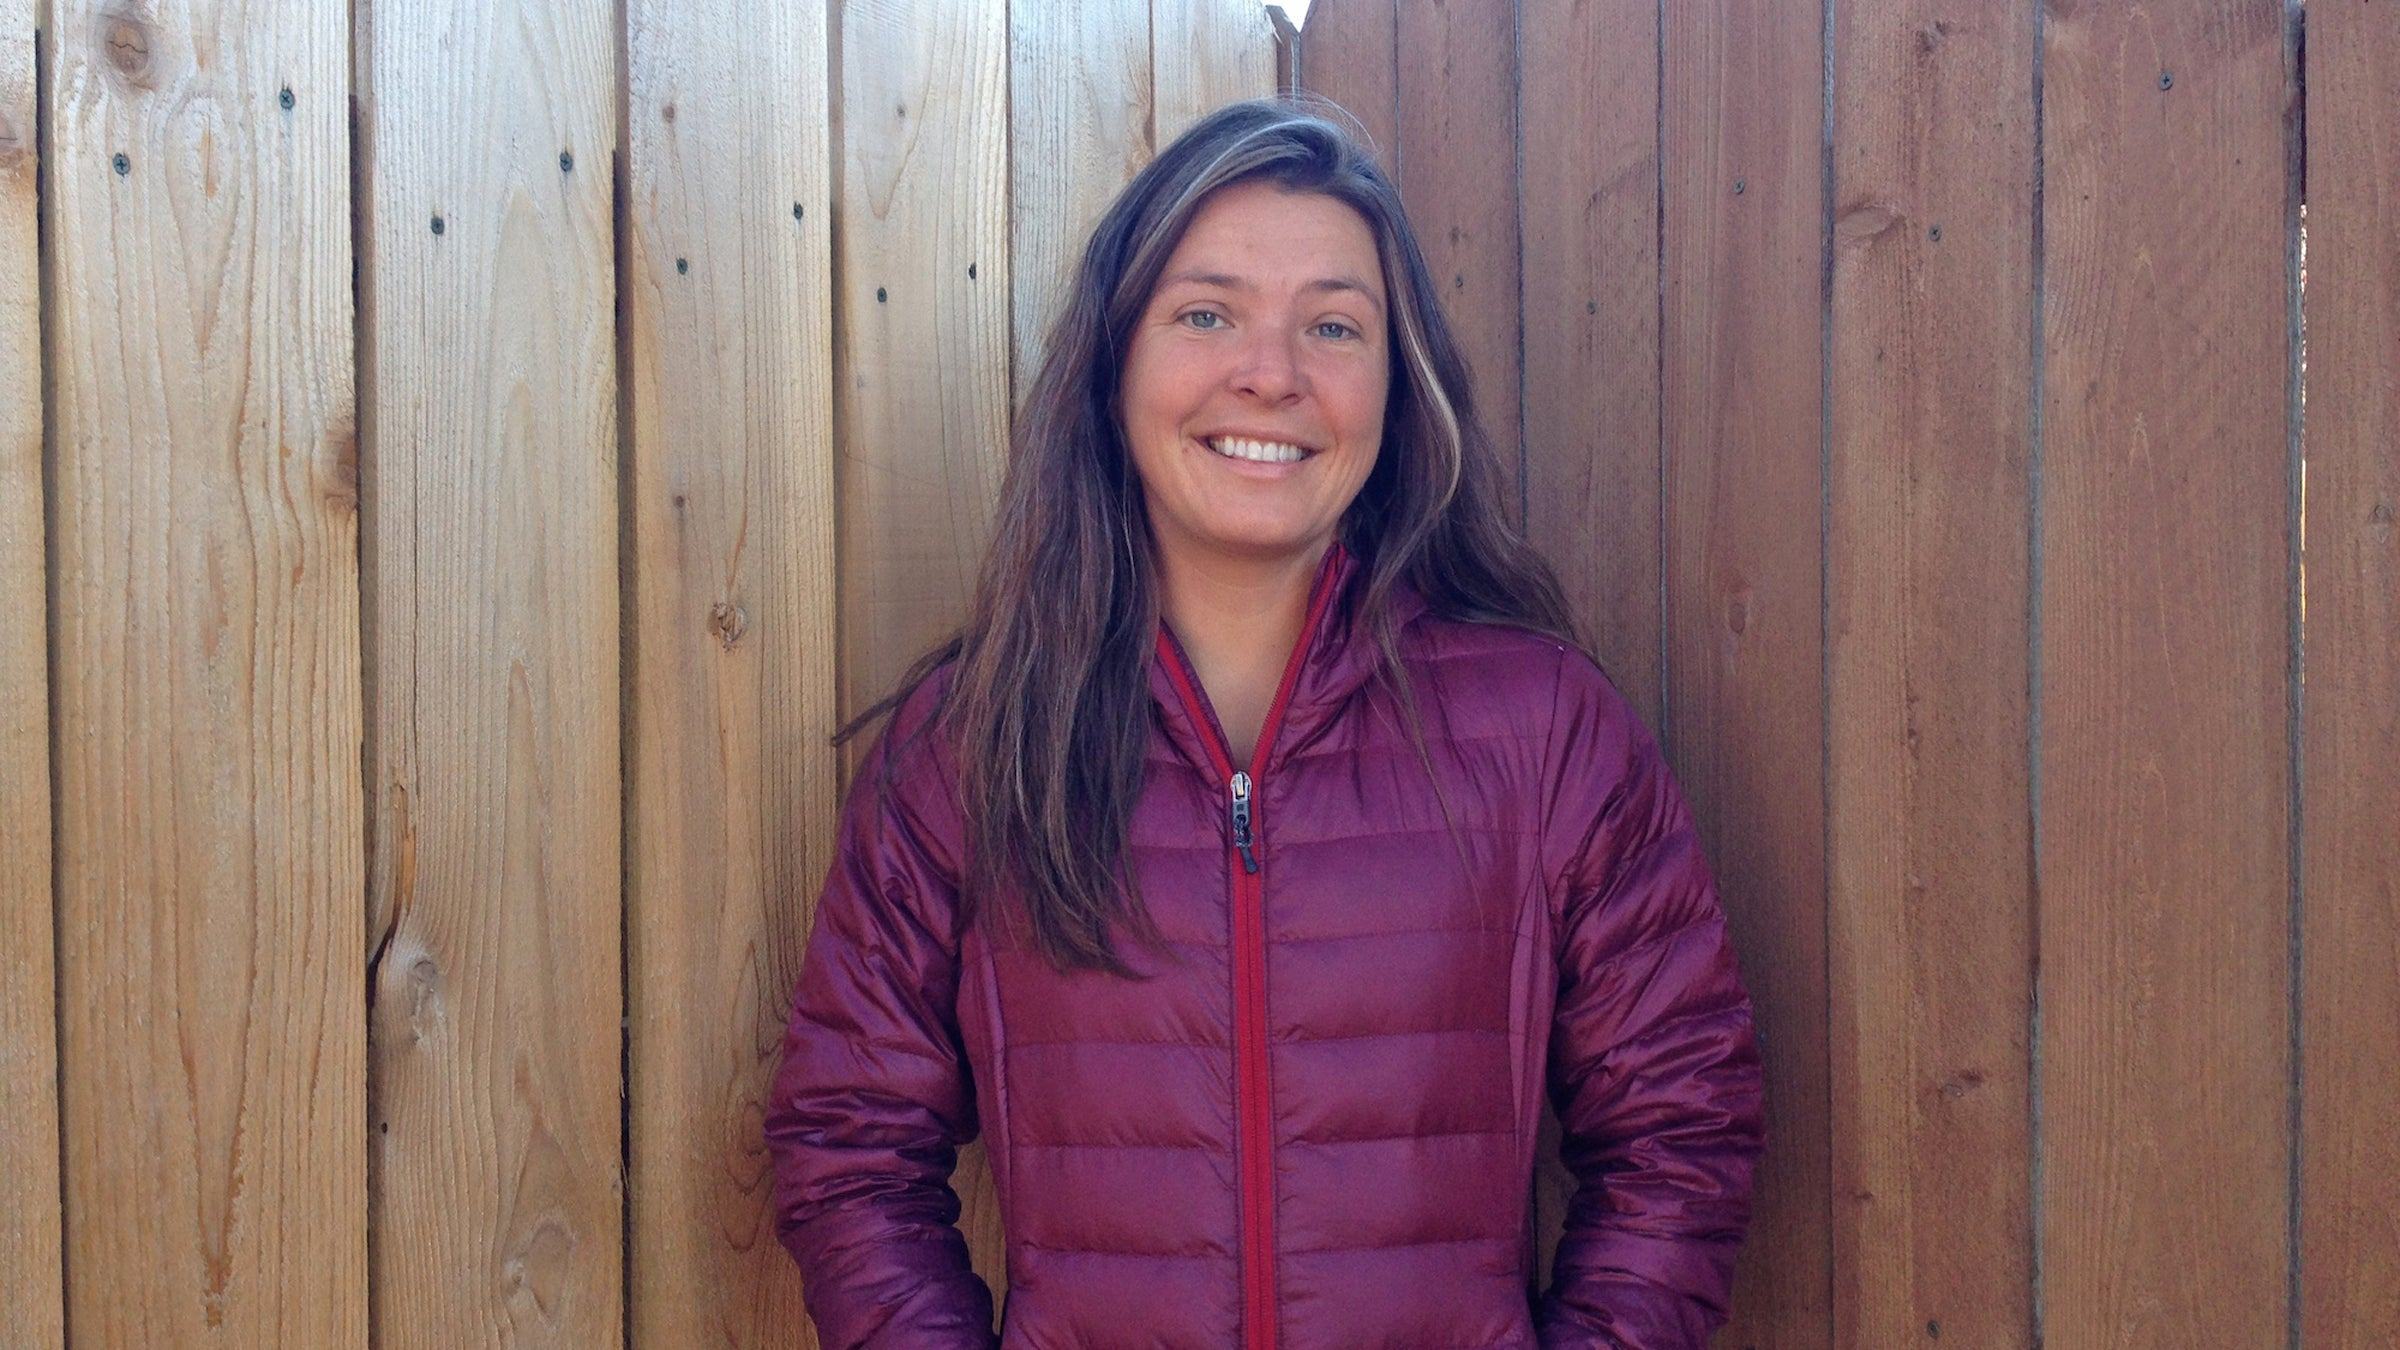 """Holly Barbush, 31 Trail Name: Little Buddha Northern California """"I learned to trust that everything is going to happen exactly how it's supposed to, and not to force things. To purge things that are not benefiting you. Eventually, I'd have come to this realization, but this experience was crucial. On this trail, you have to be open and flexible. Hikers have wanderlust, and there's a special something burning in each of us. People are here to search for something in themselves and that's how it should be in life, always."""""""